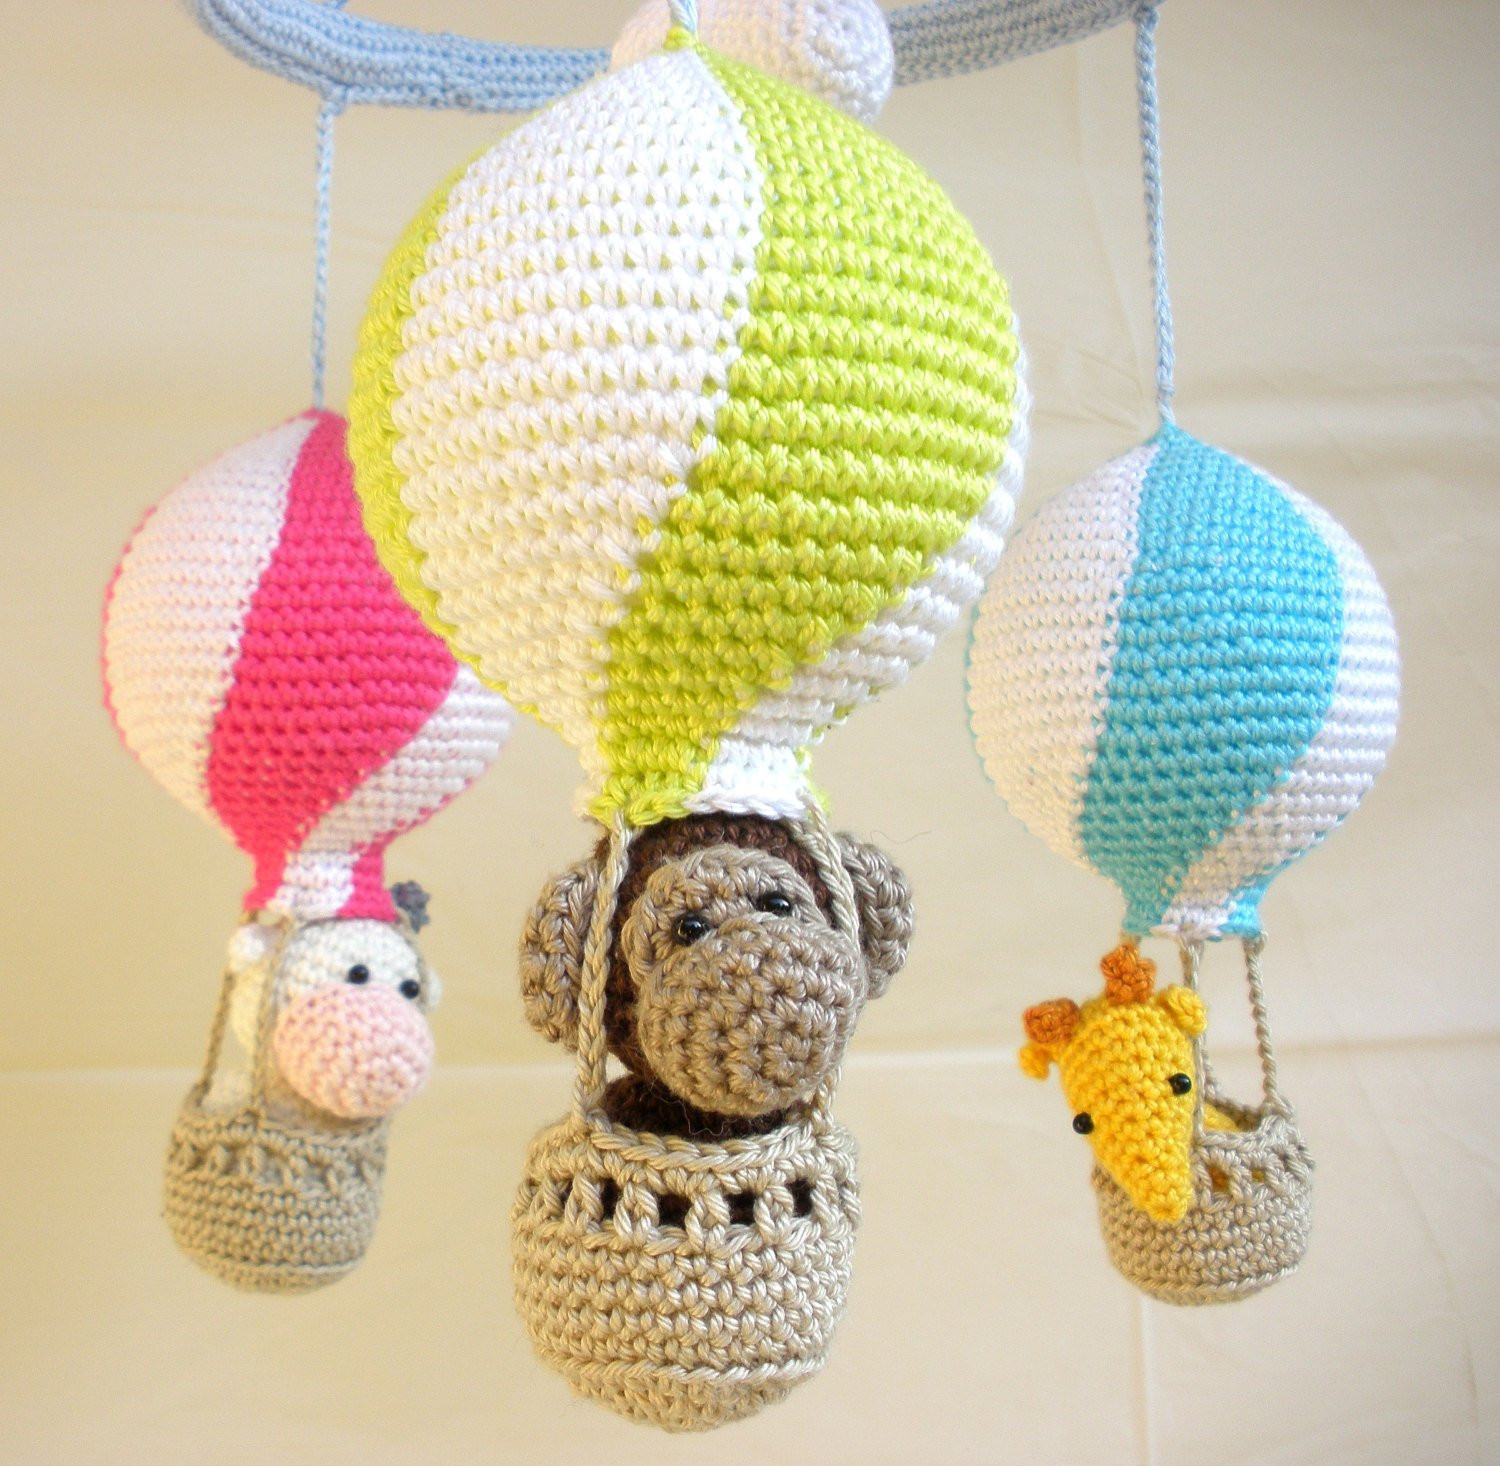 Best Of Baby Gear Galore Hot Air Balloon Mobile Crochet Mobile Crochet Baby Mobile Of Amazing 42 Ideas Crochet Baby Mobile